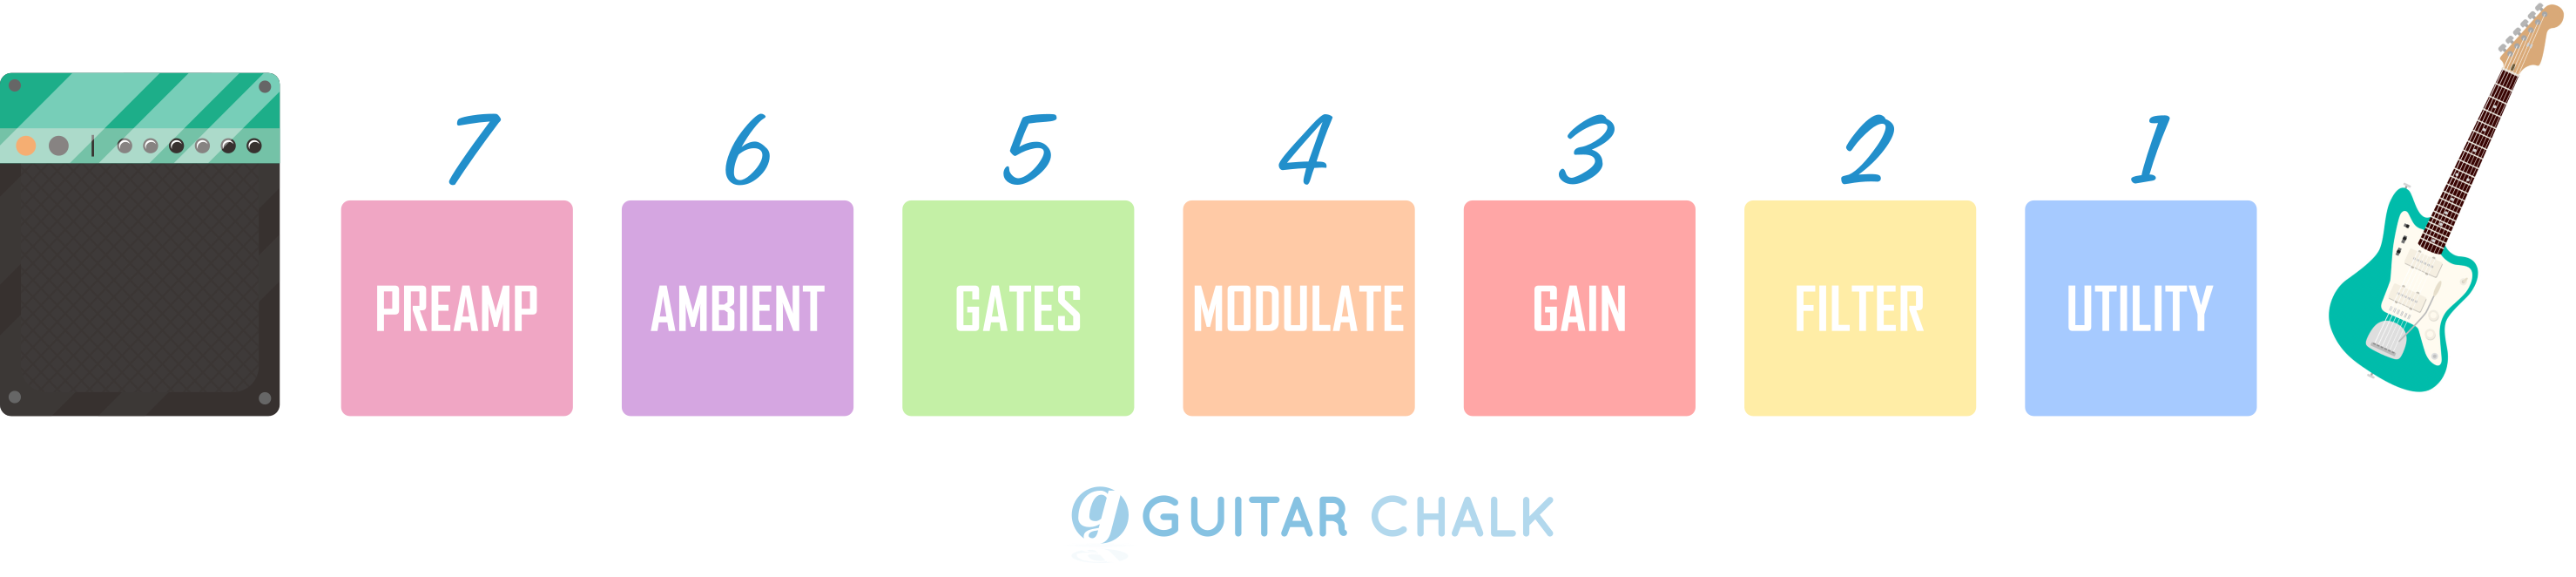 Effects Order for Guitar Pedals Based on Category